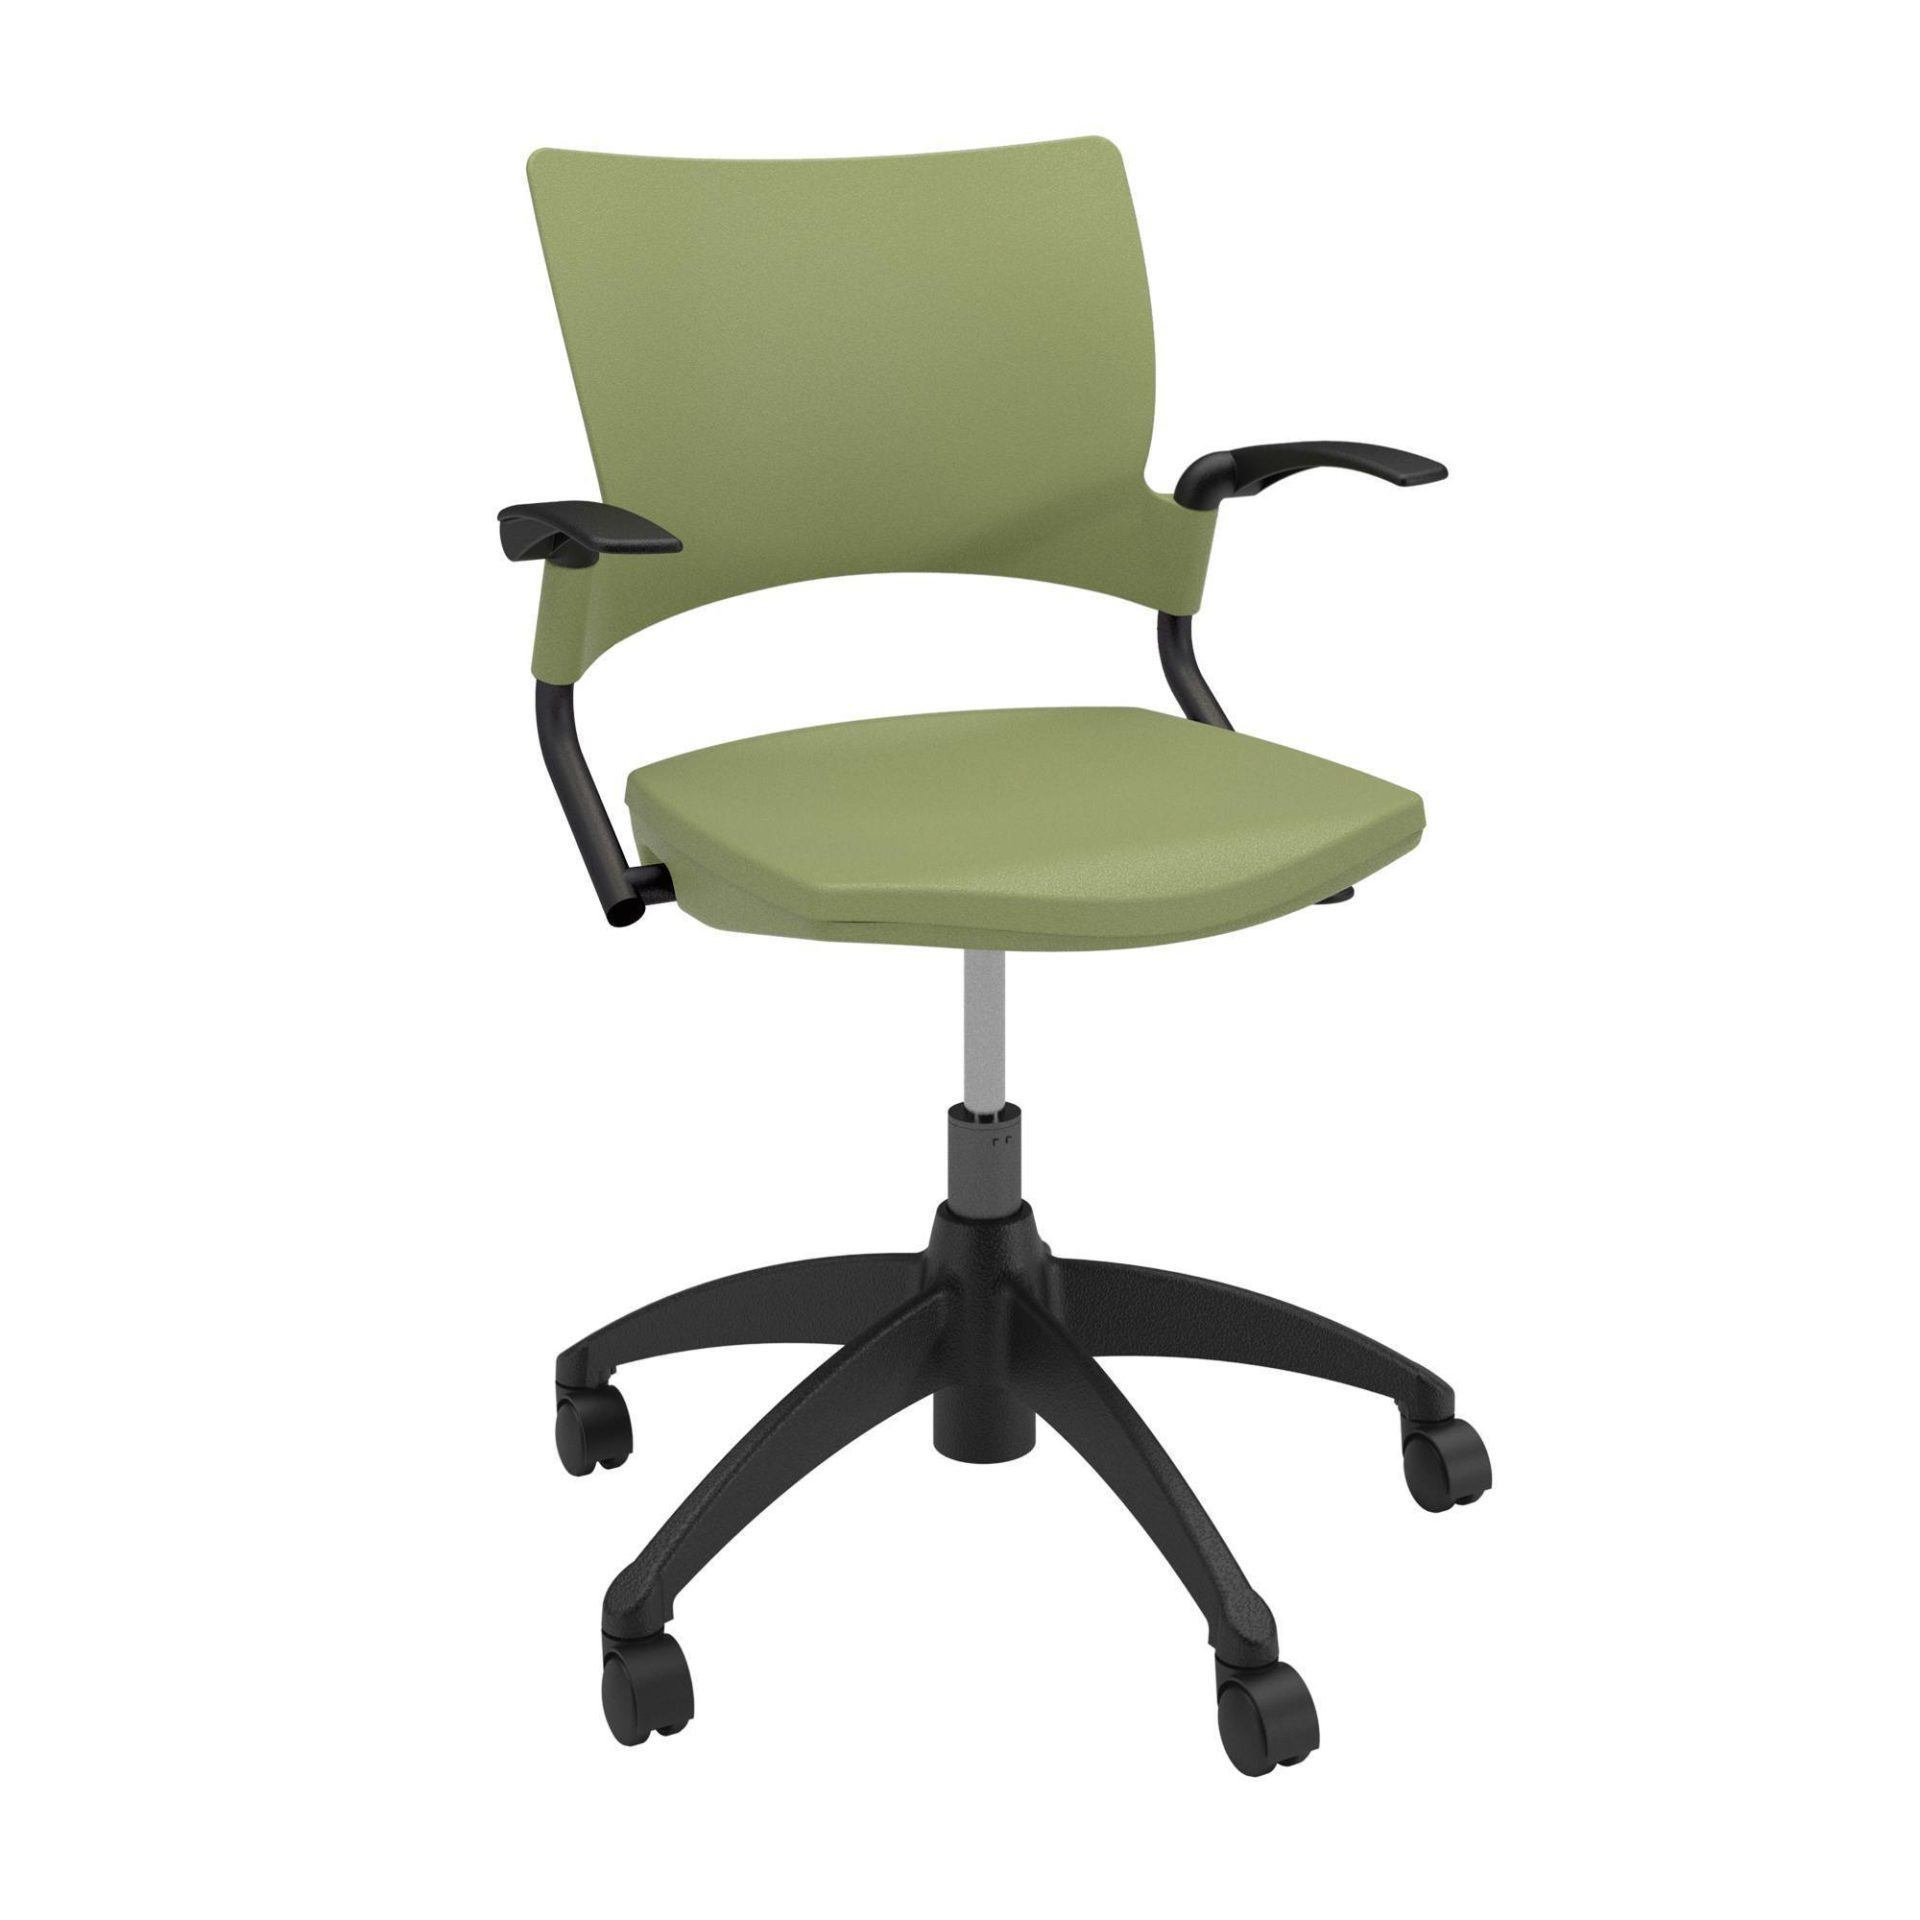 SitOnIt Relay Light Task Chair